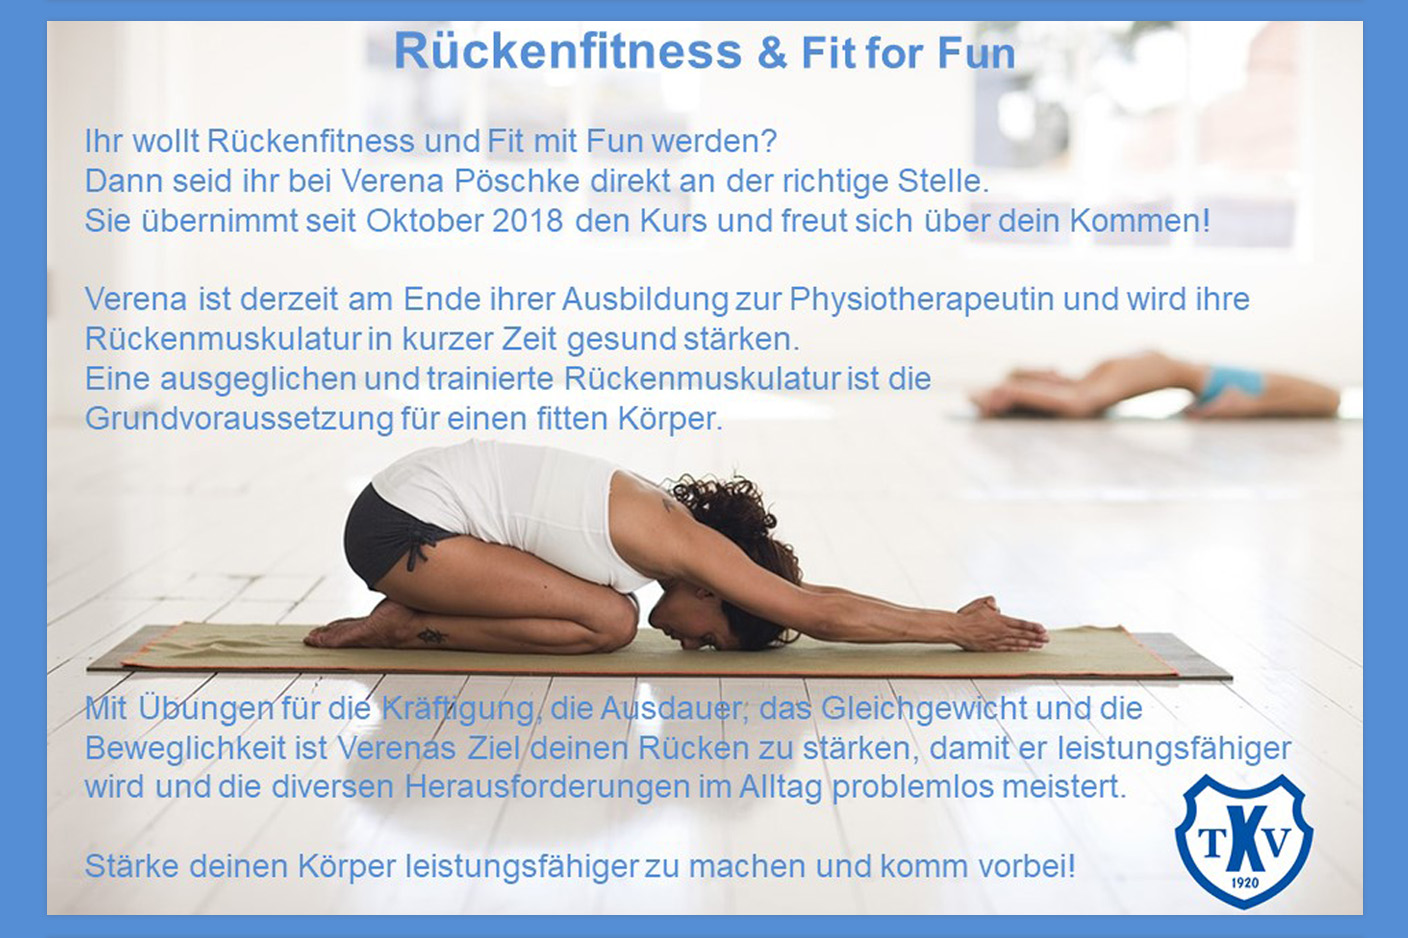 Rückenfitness & Fit for Fun